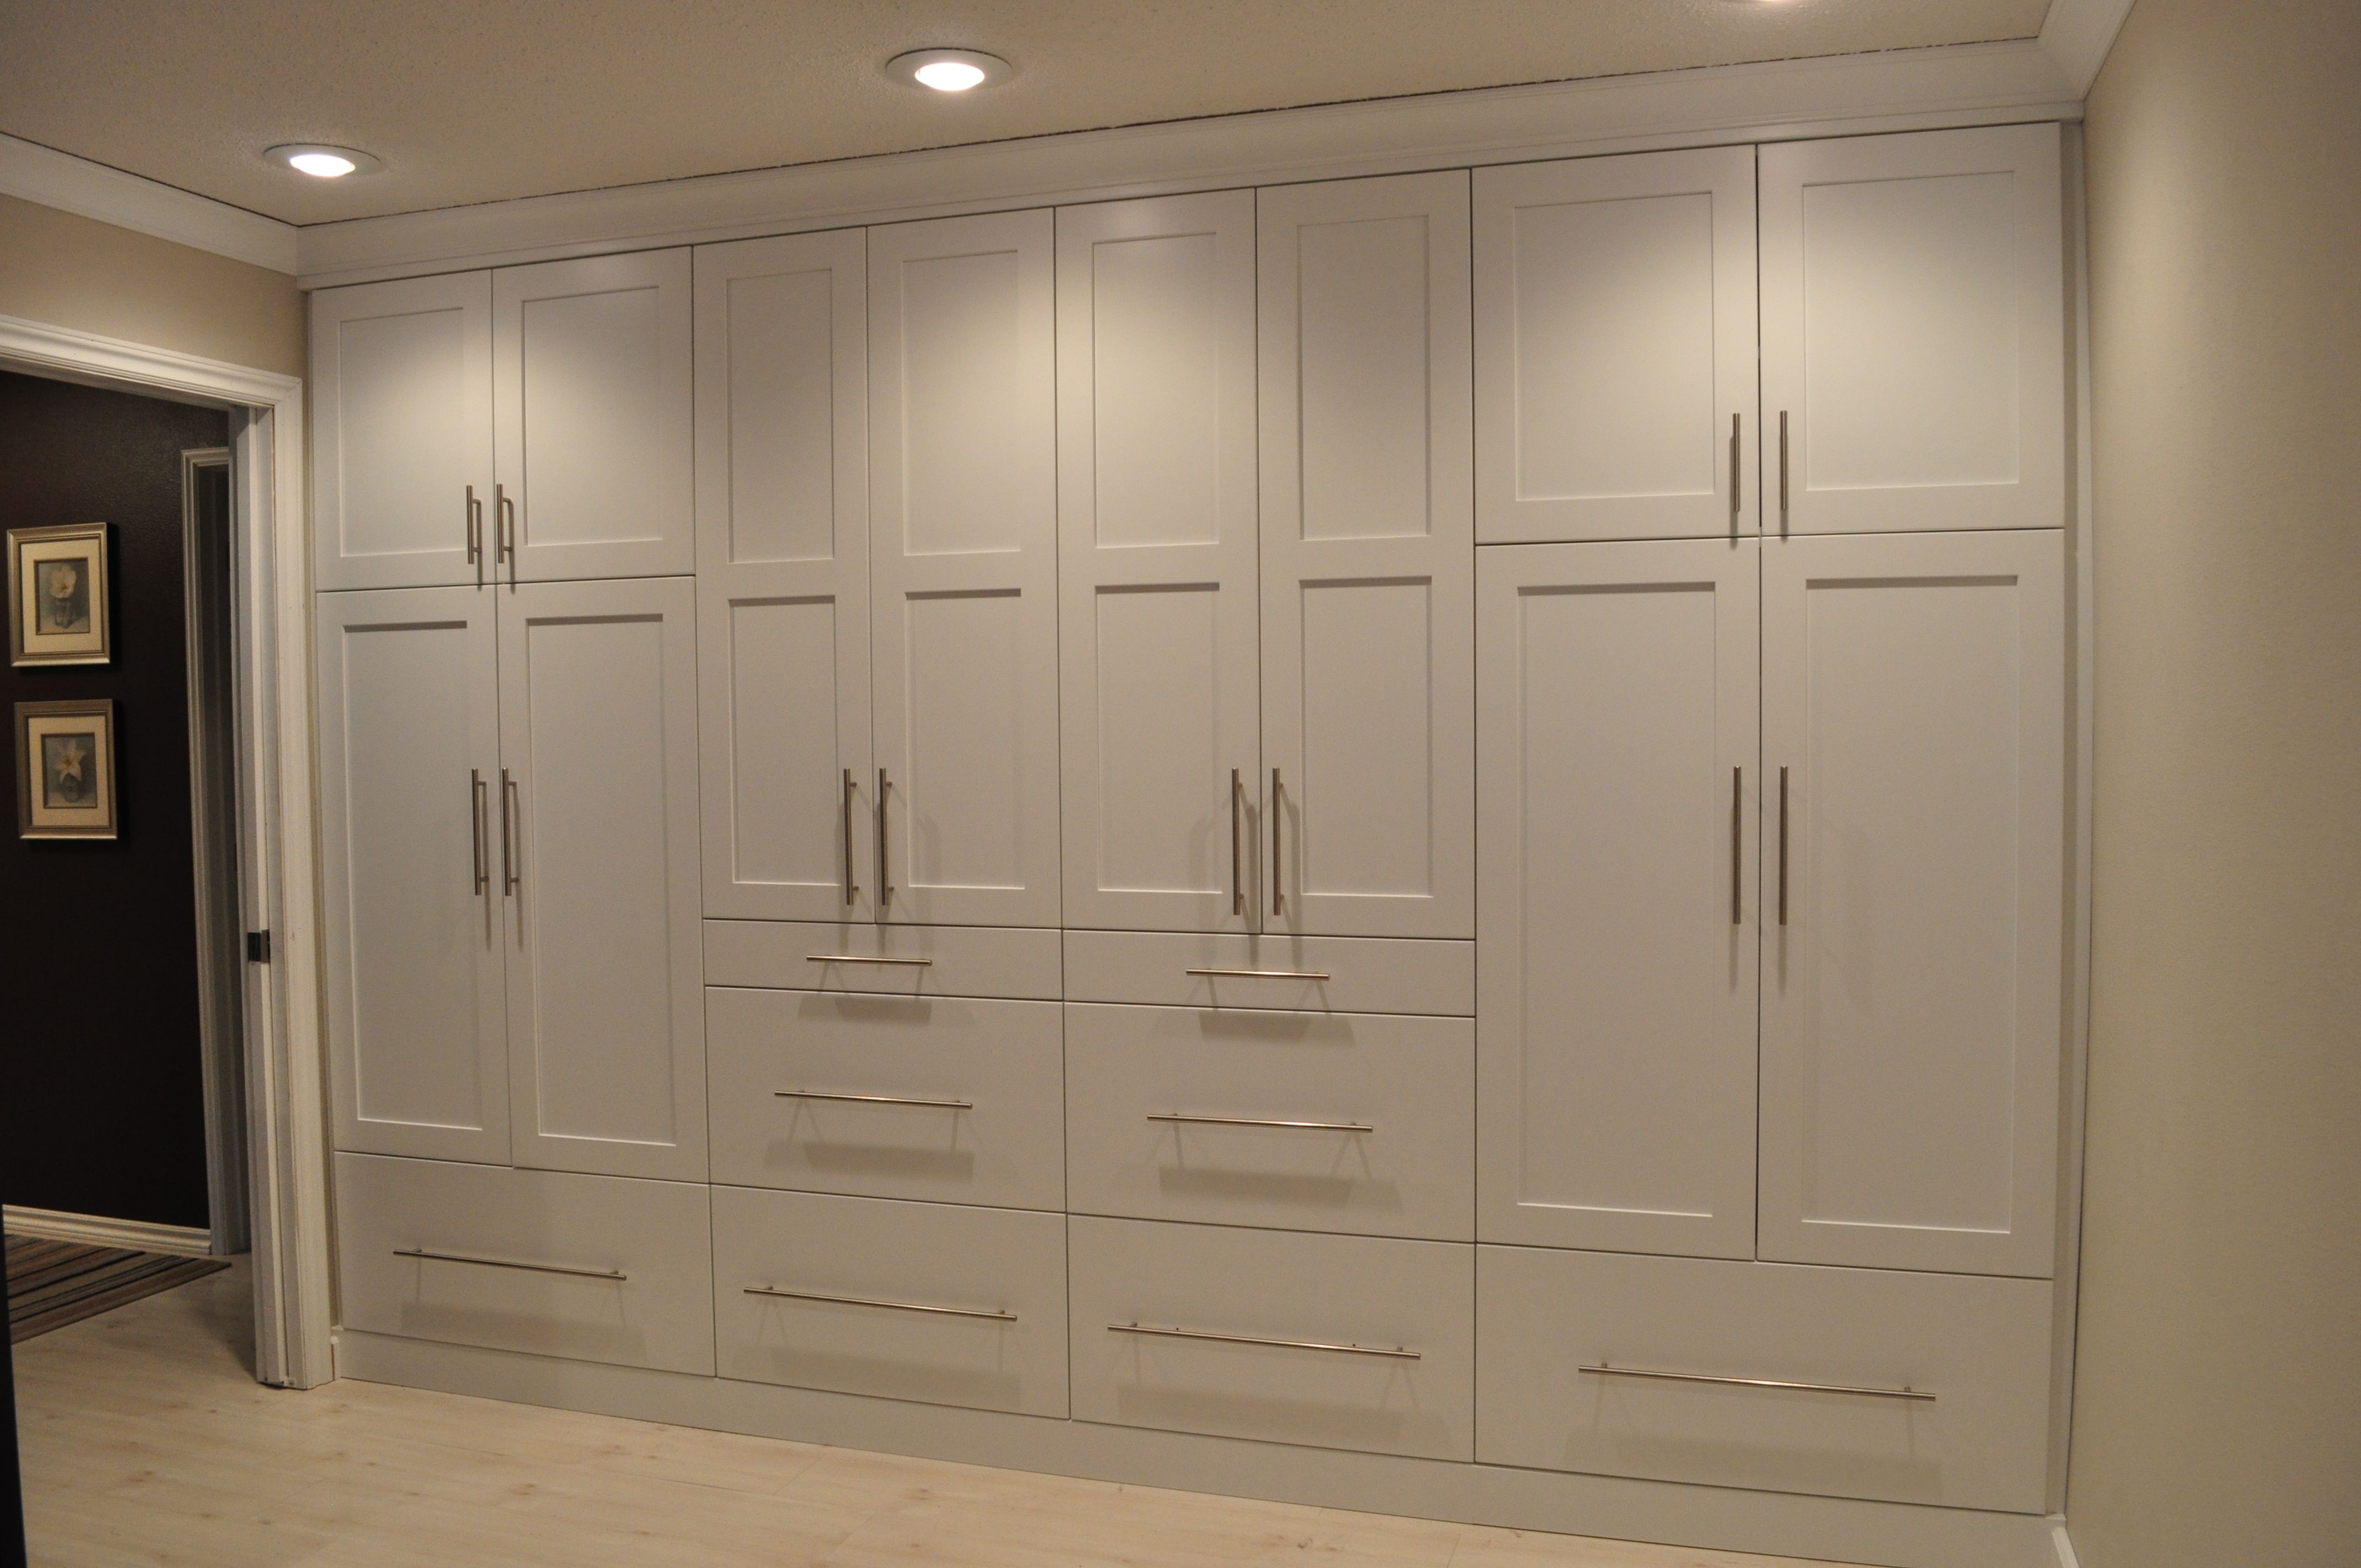 Columbia Cabinets In Iceberg White Built In Closet System Design By Concepts Kitchen And Bath Designs Build A Closet Kitchen And Bath Design Kitchen Concepts